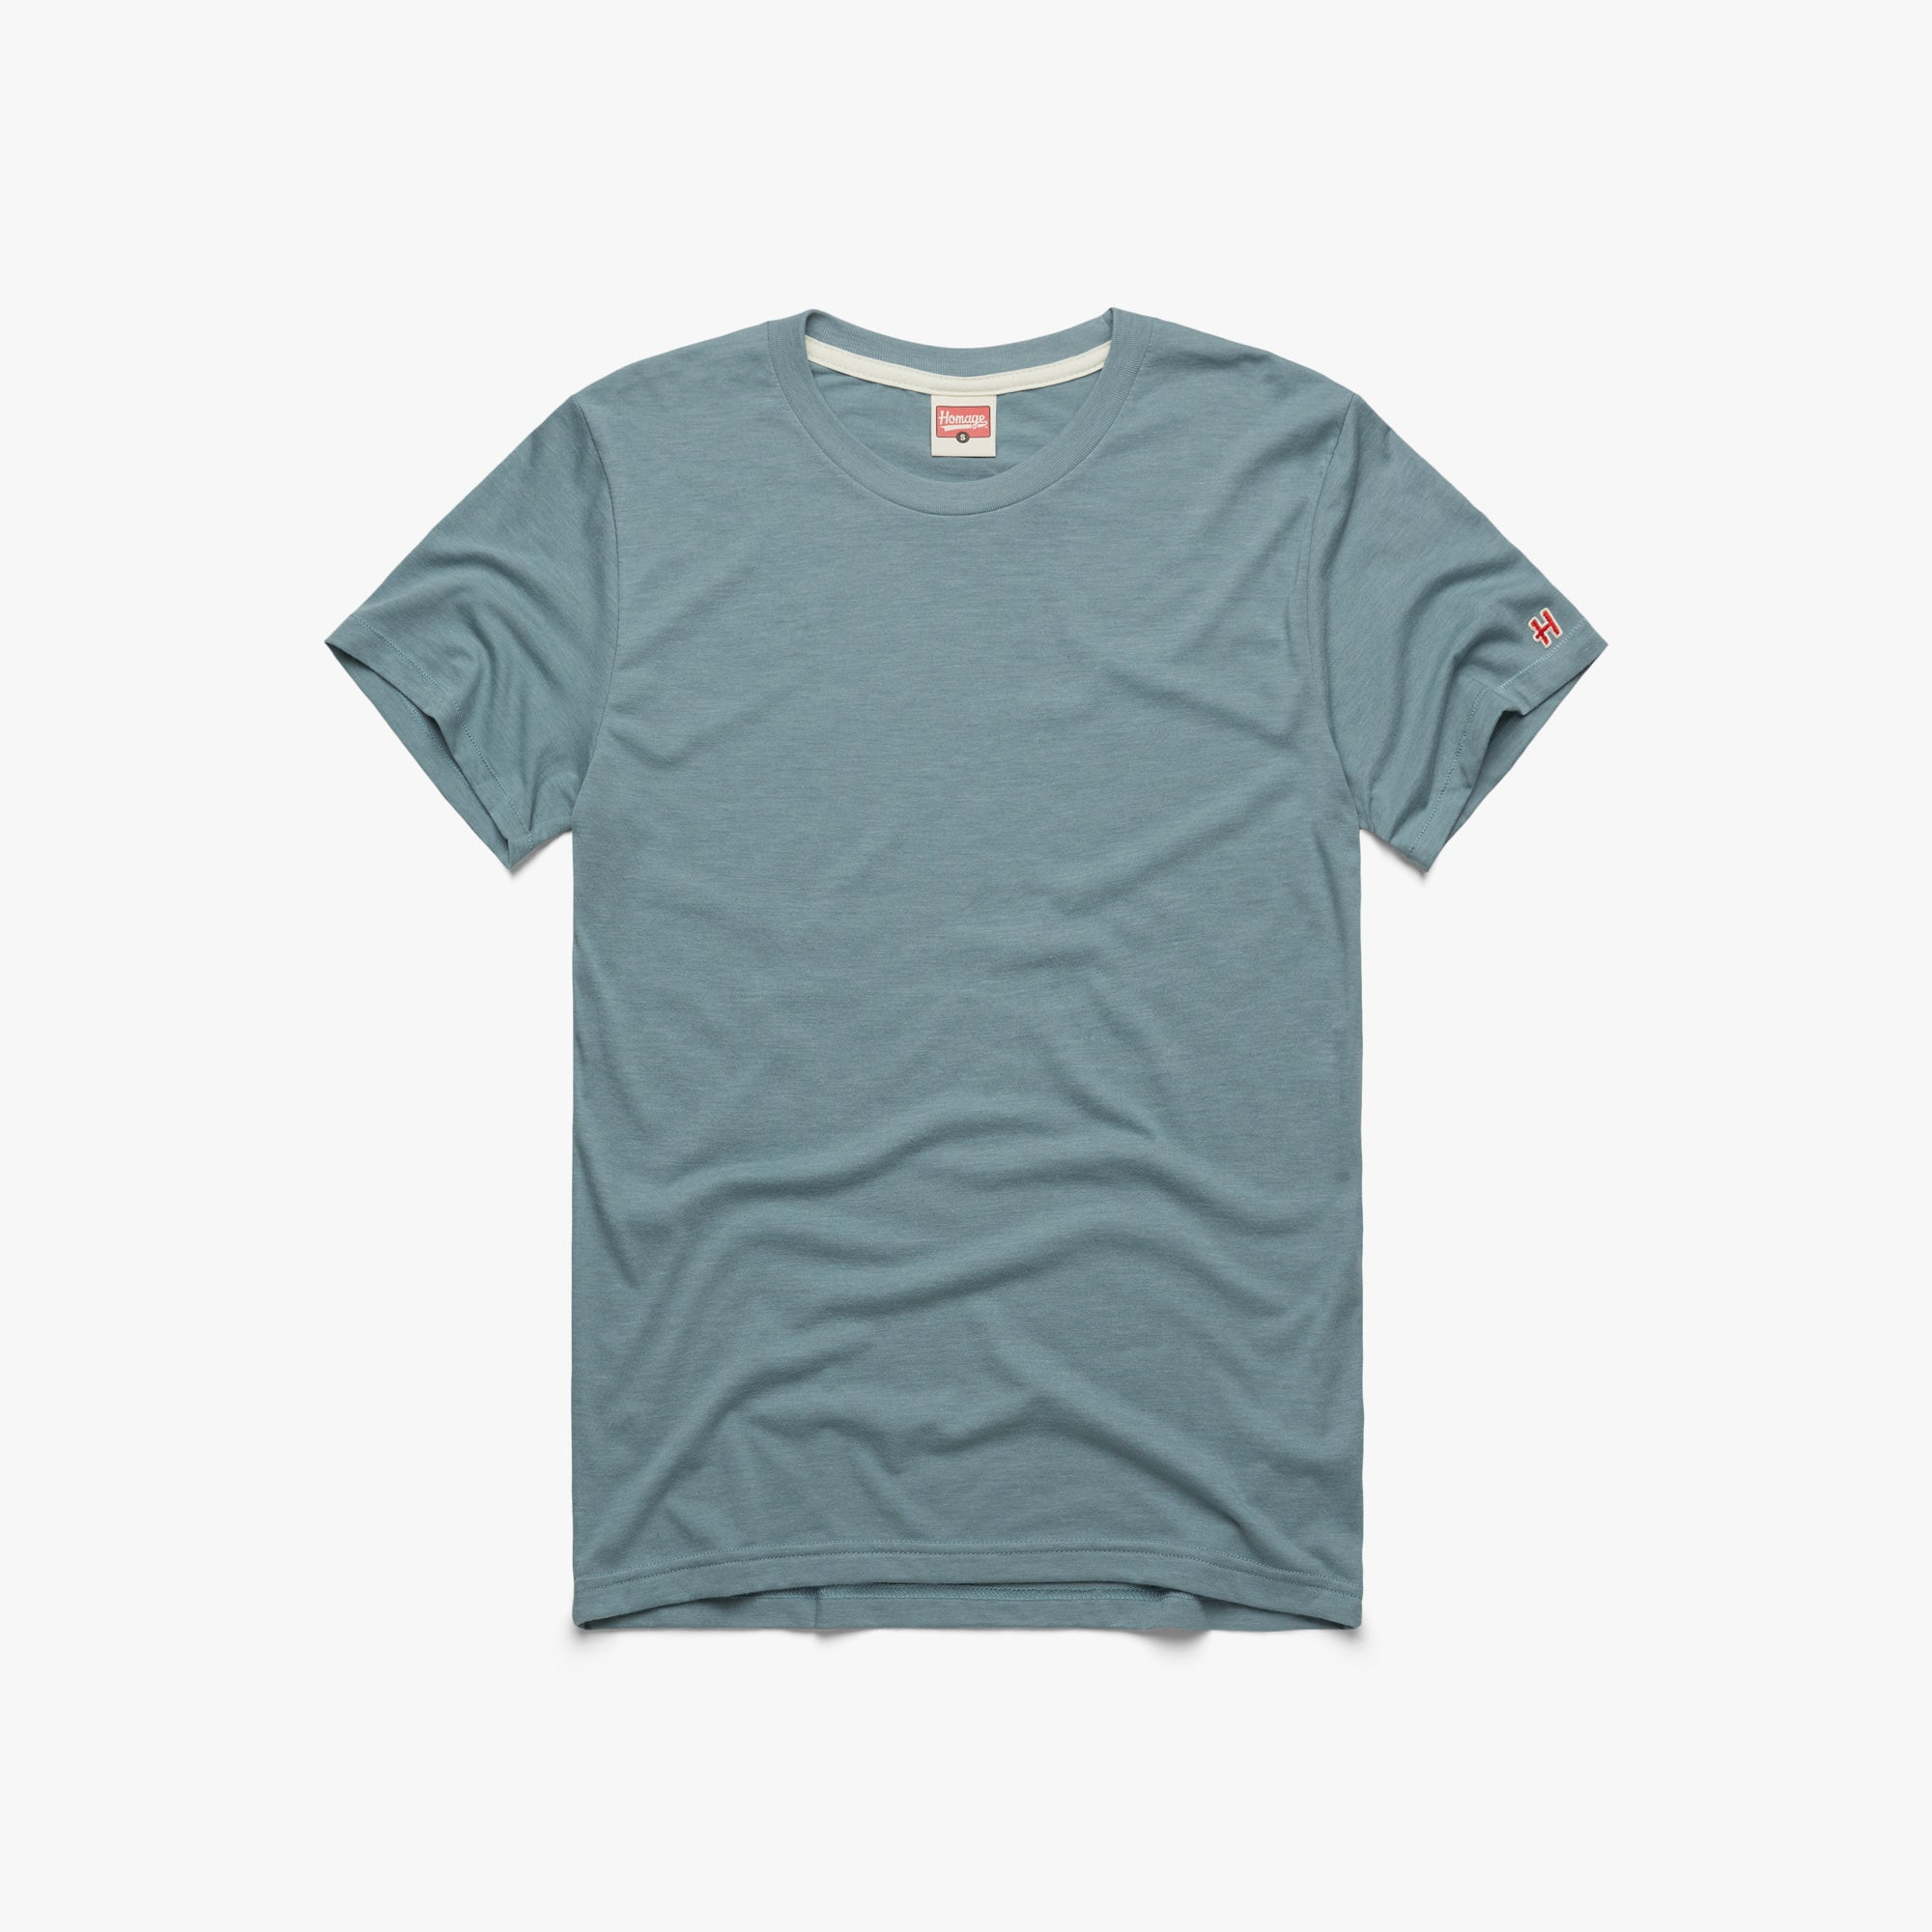 Go-To Tee